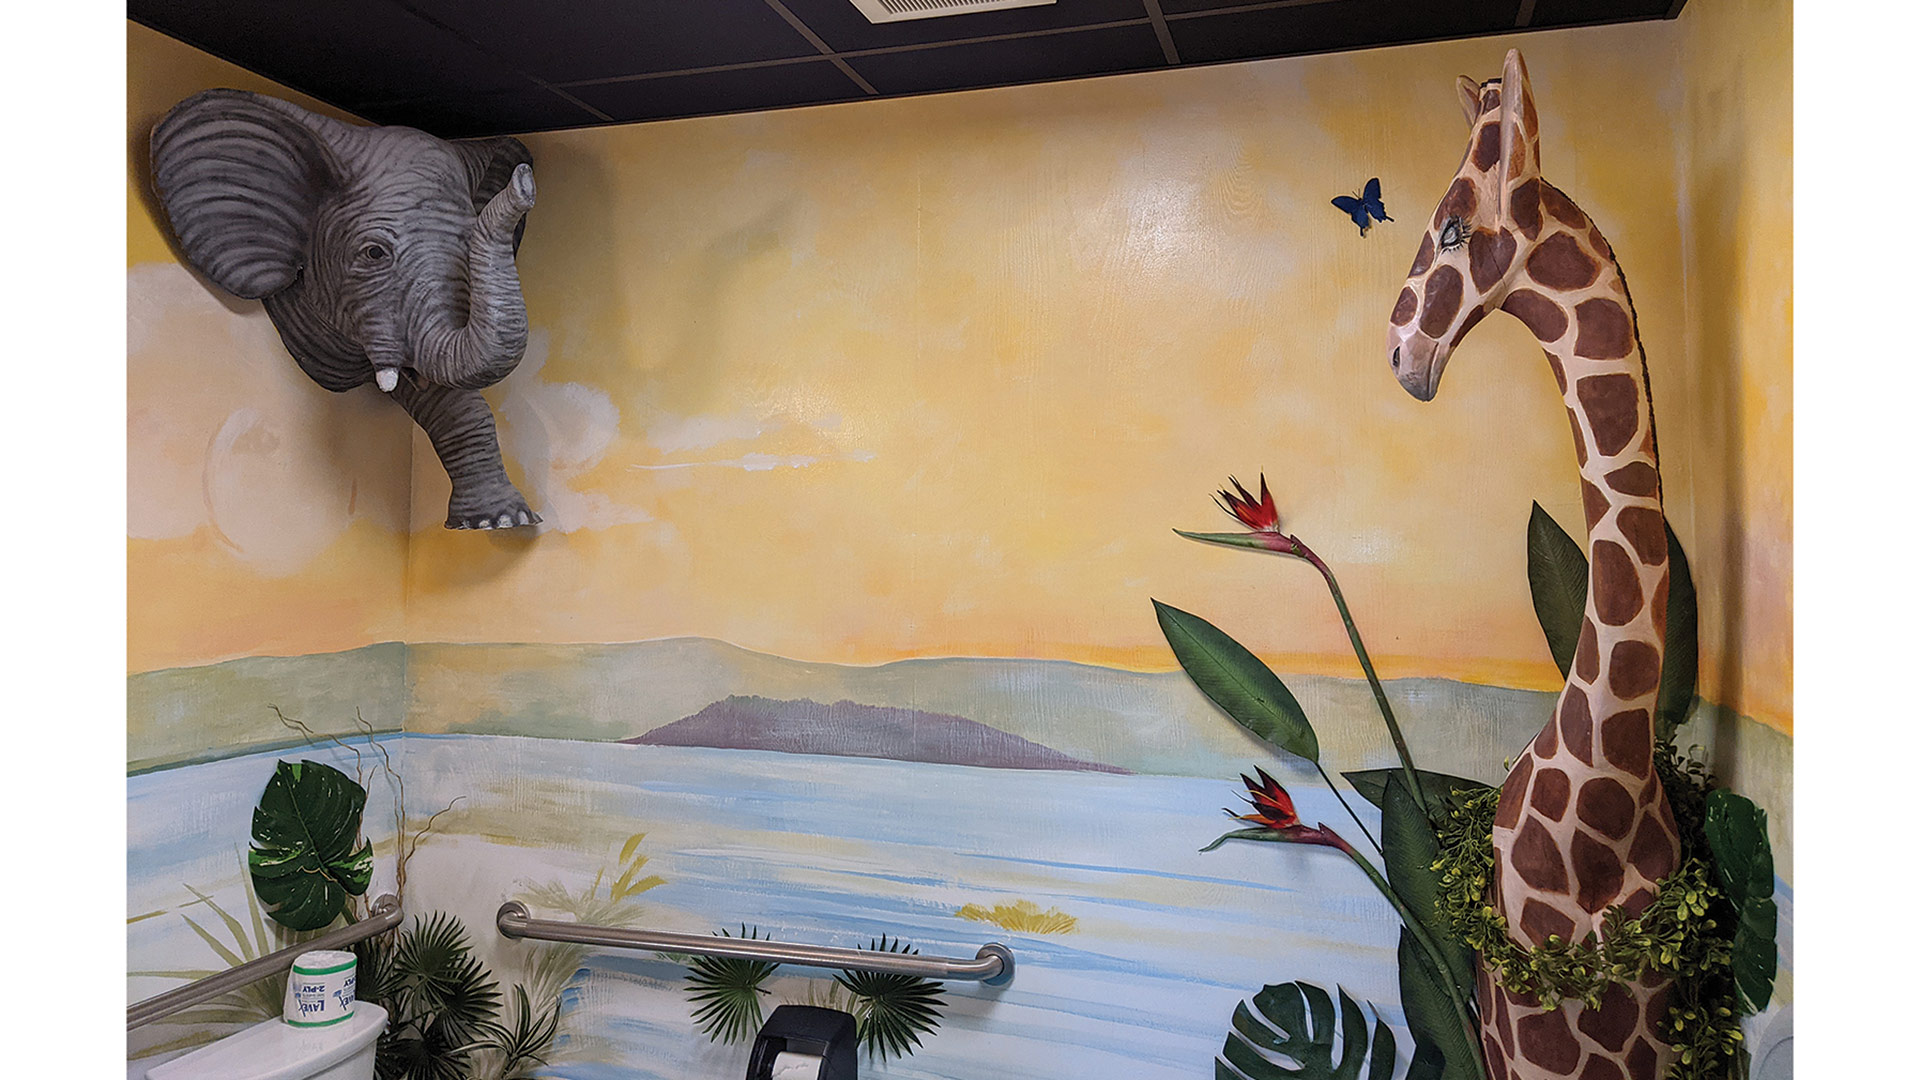 Ivy Mabius designed a whimsical, jungle-themed bathroom at the gallery.